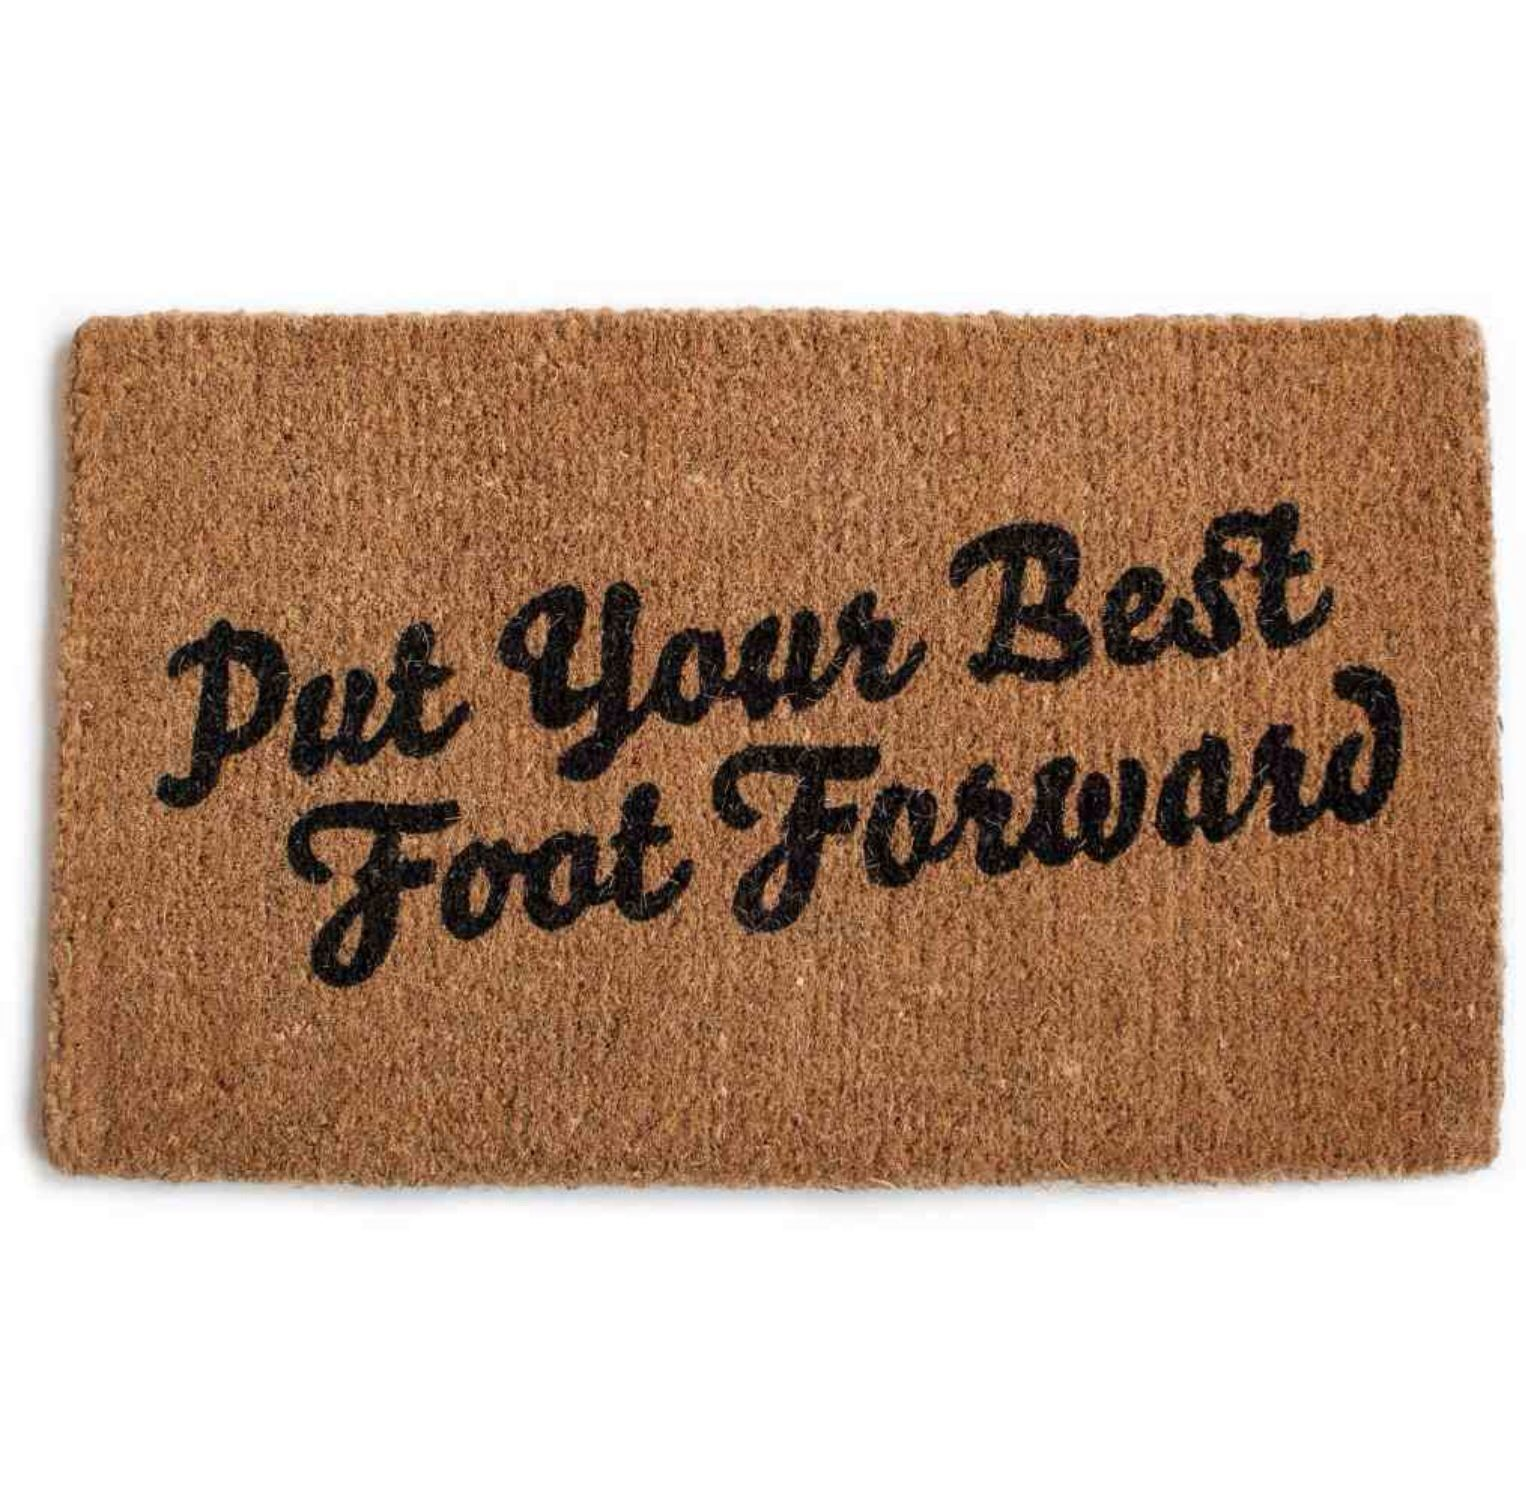 Love The Idea Of Seeing This Each Time You Walk Out Your Front Door Put Your Best Foot Forward Door Mat By Izola